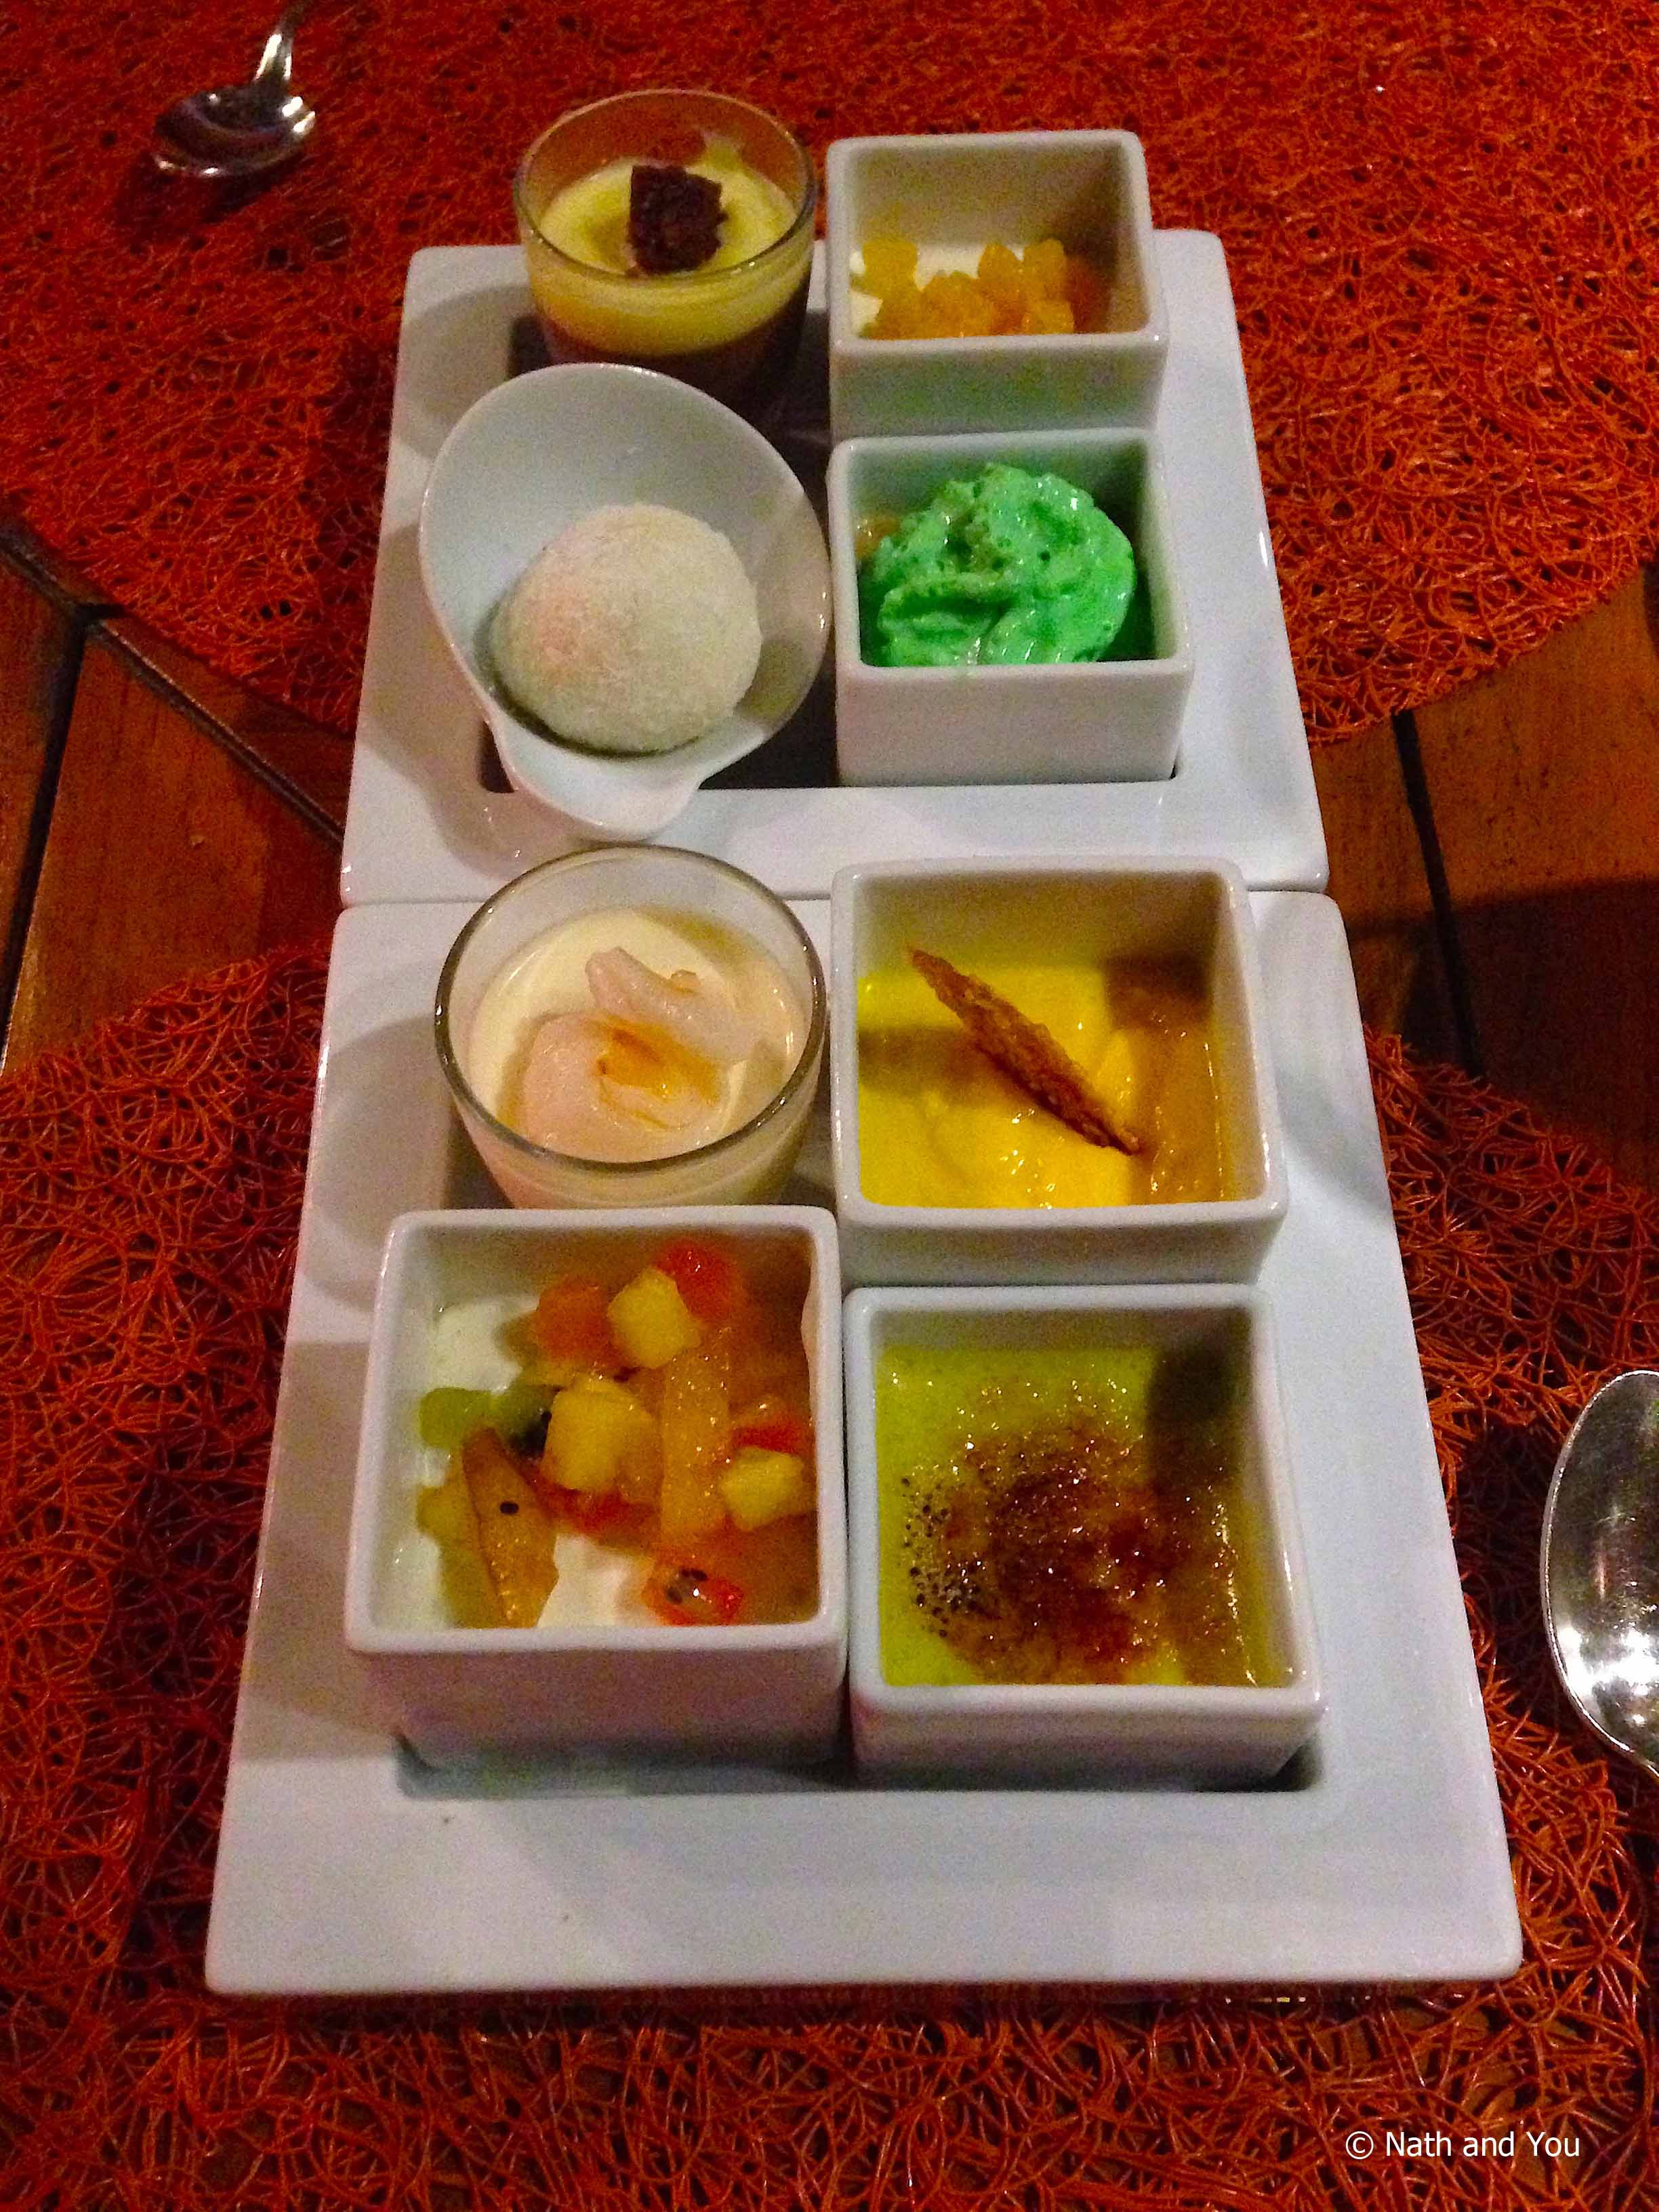 restaurant-asiatique-desserts-Constance-Le-Prince-Maurice-Nath-and-You